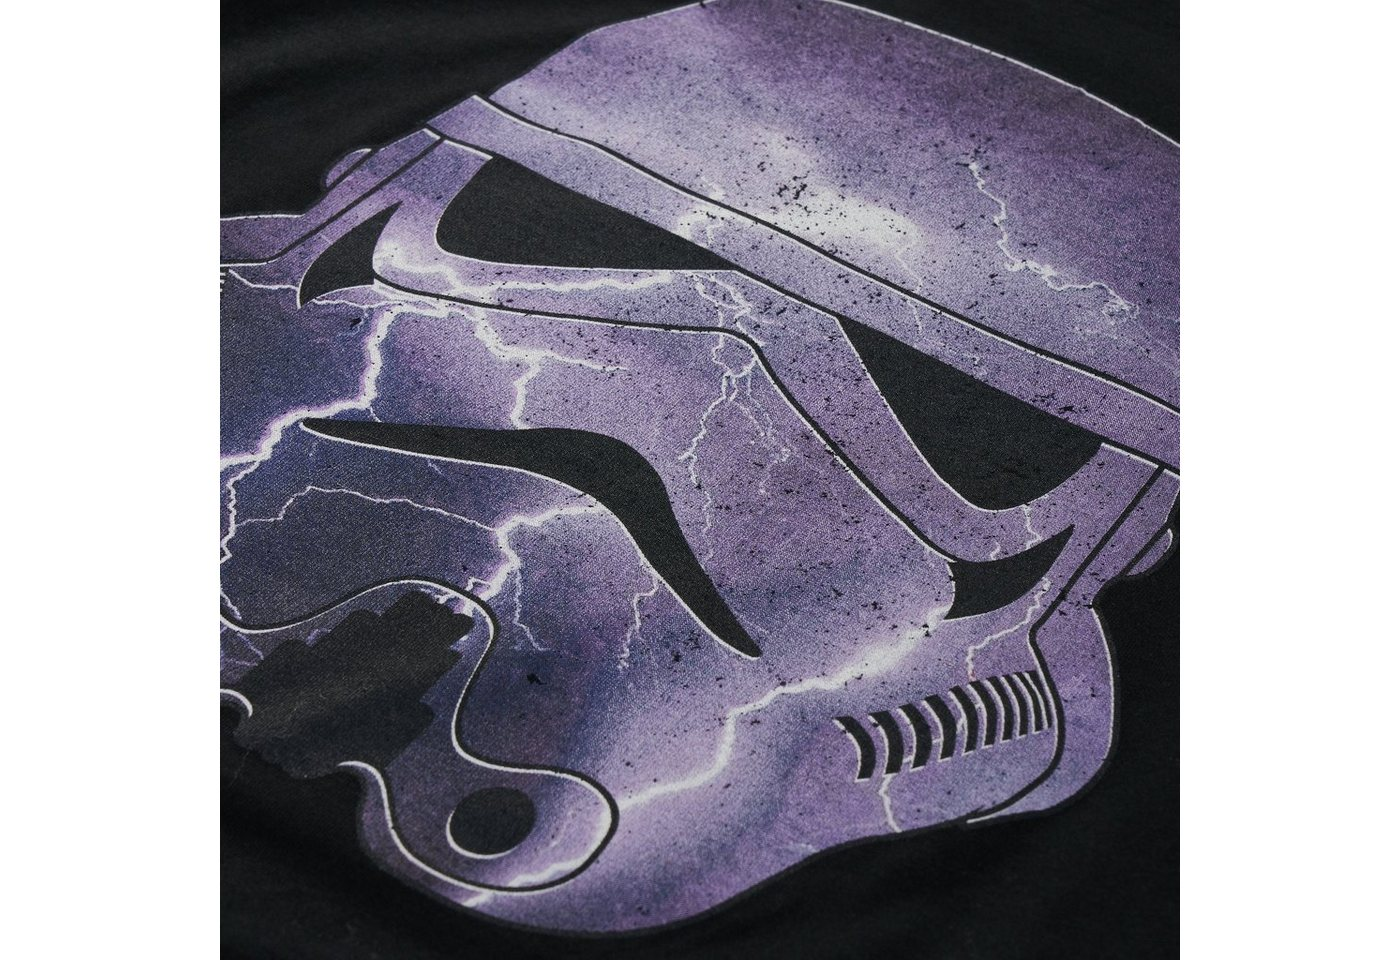 Musterbrand T-Shirt »Imperial Stormtrooper - Thunder« Star Wars Kollektion